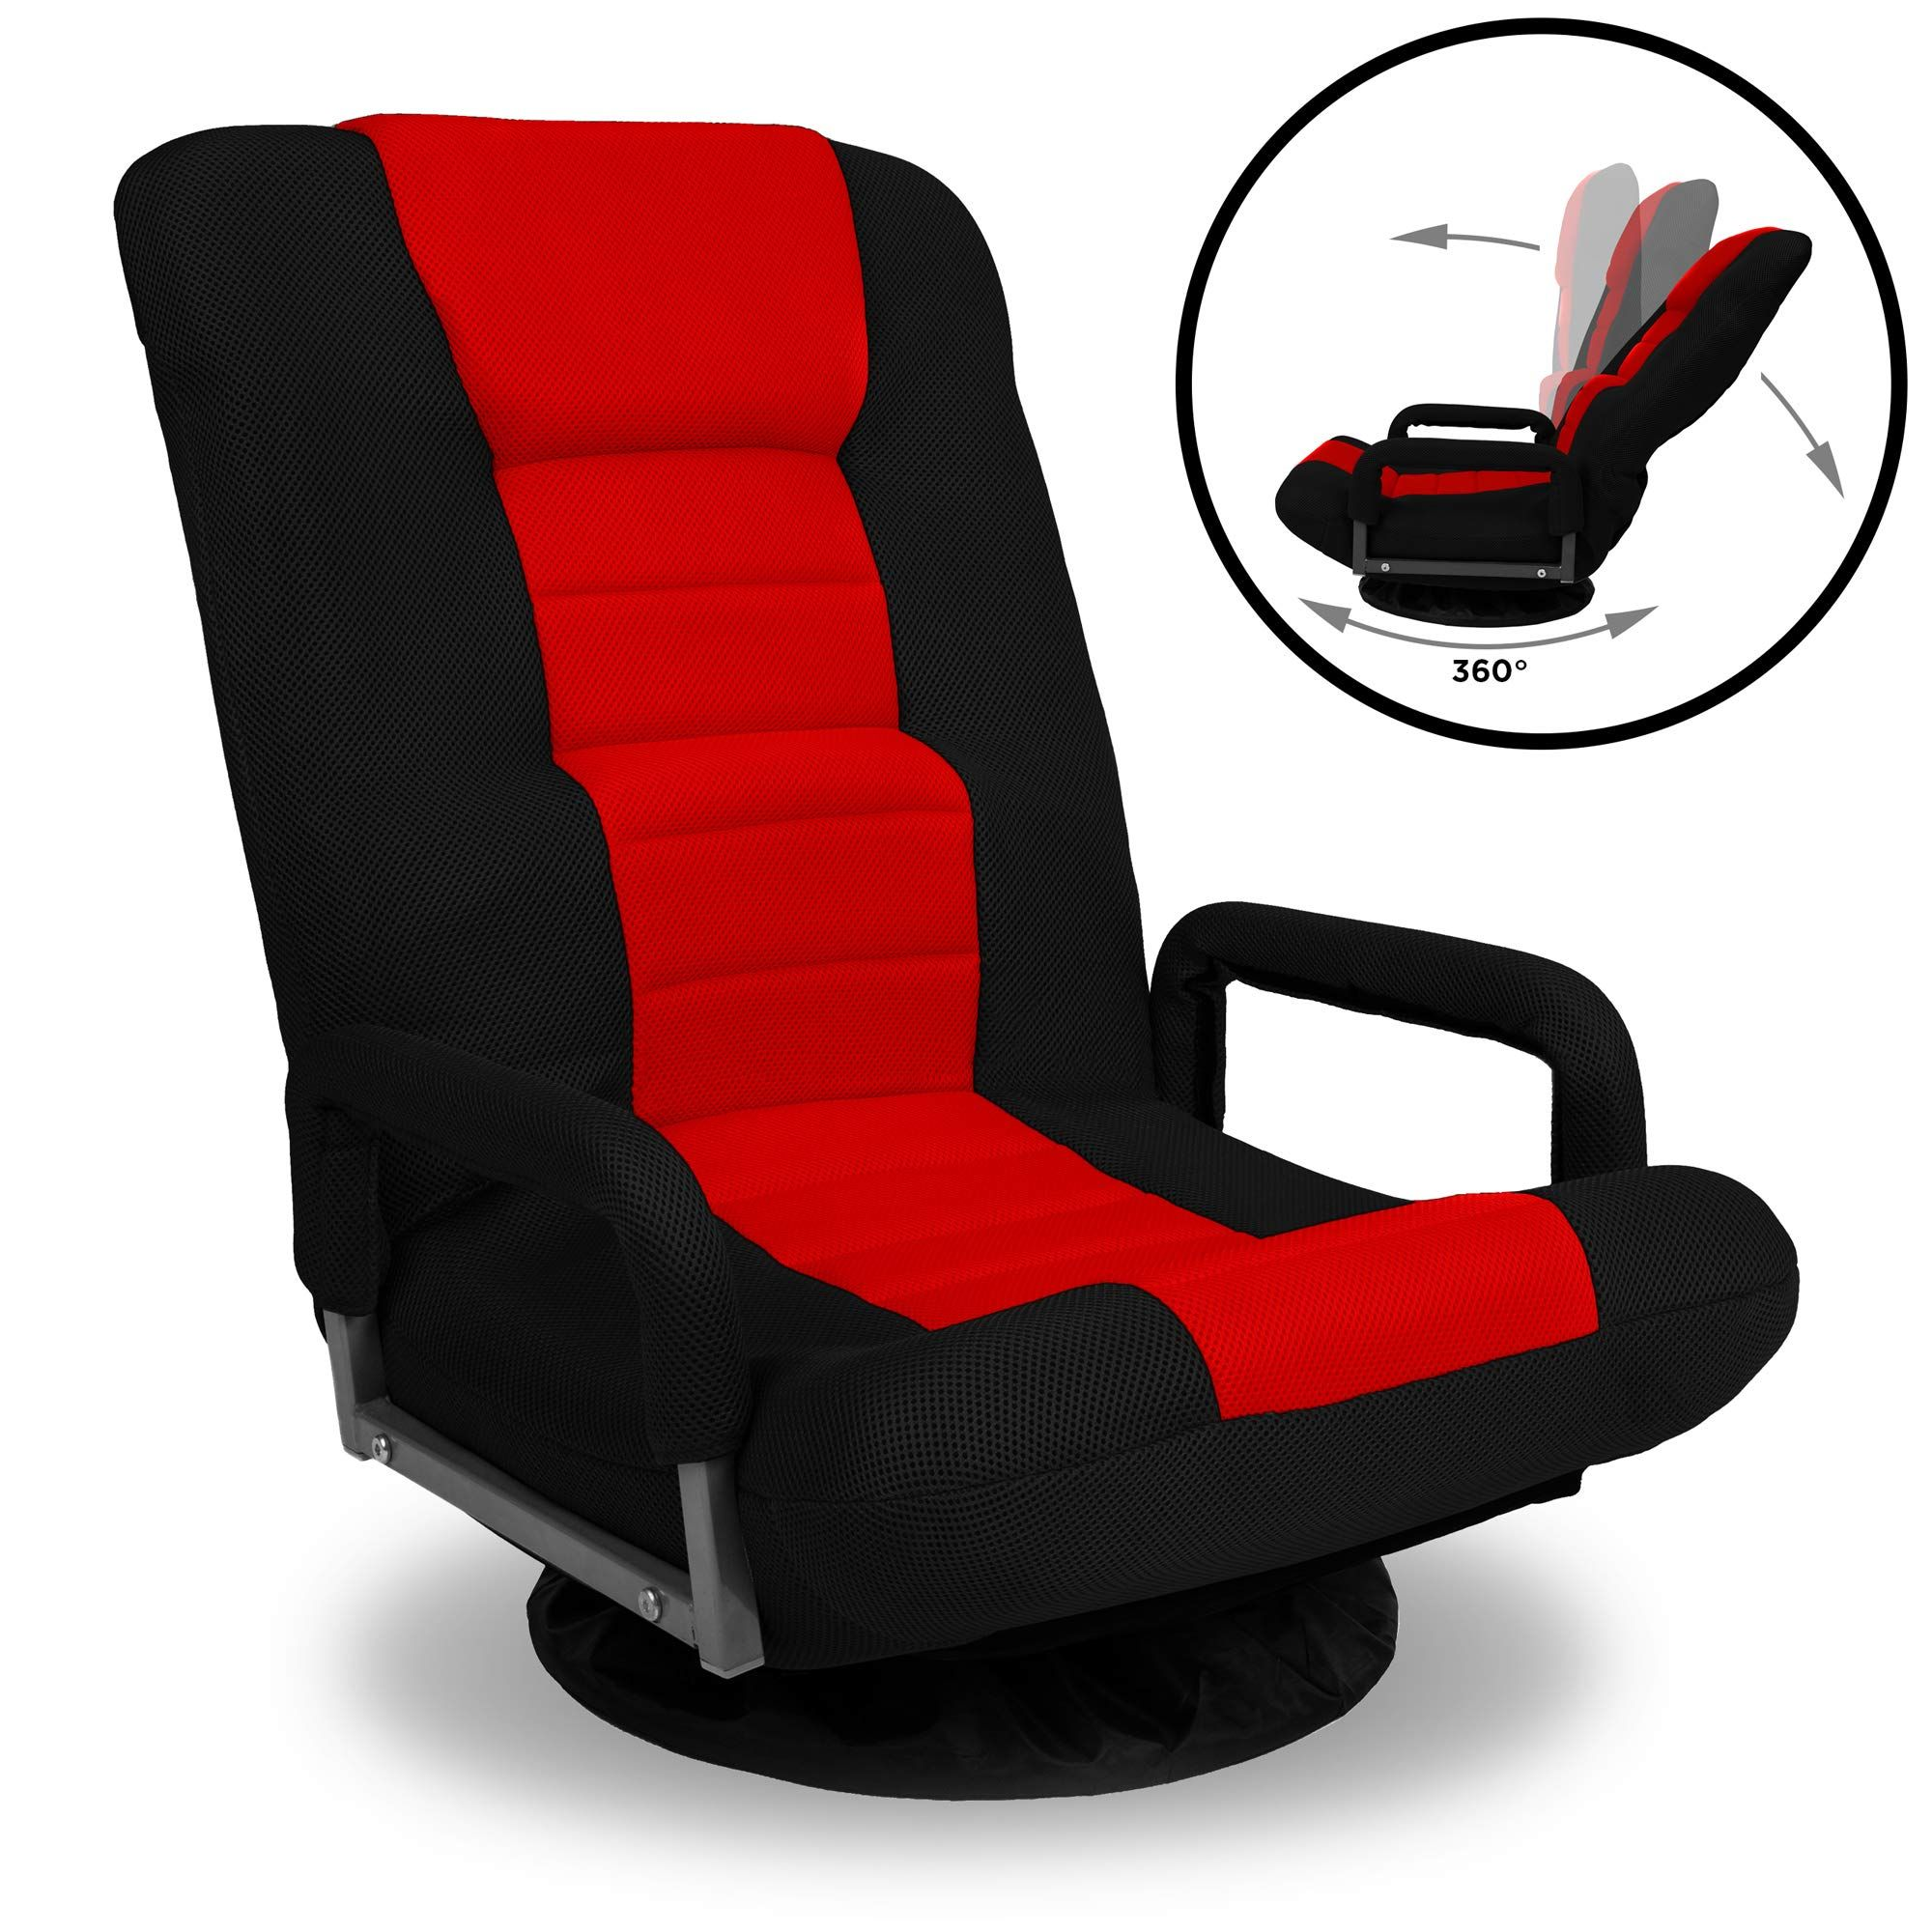 Best Choice Products 360 Degree Swivel Gaming Floor Chair W Armrest Handles Foldable Adjustable Backrest Red Black Gaming Chair Floor Chair Gaming Sofa